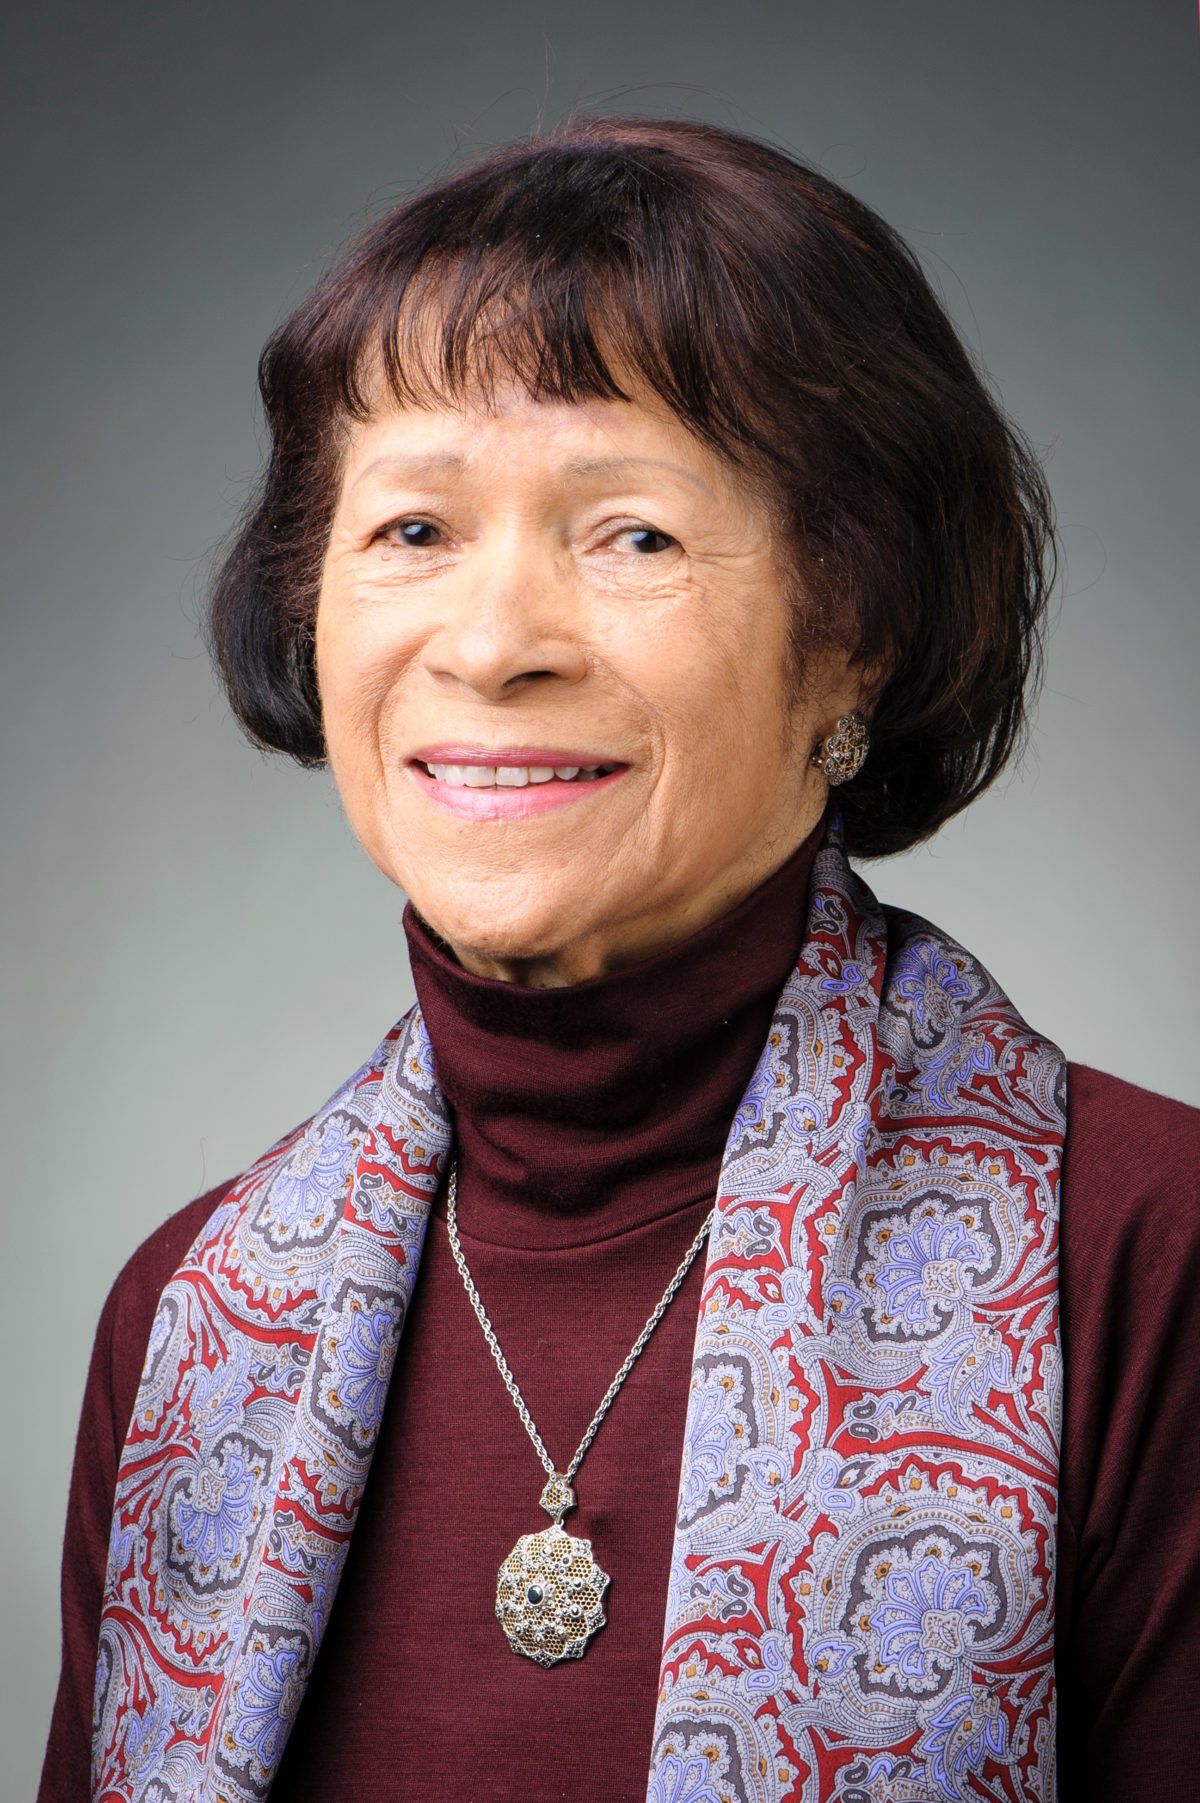 Mercile Lee, emeritus Assistant Vice Chancellor and Director of the Chancellor's and Powers-Knapp Scholarship Programs at the University of Wisconsin-Madison, is pictured on Nov. 11, 2013. (Photo by Bryce Richter / UW-Madison)